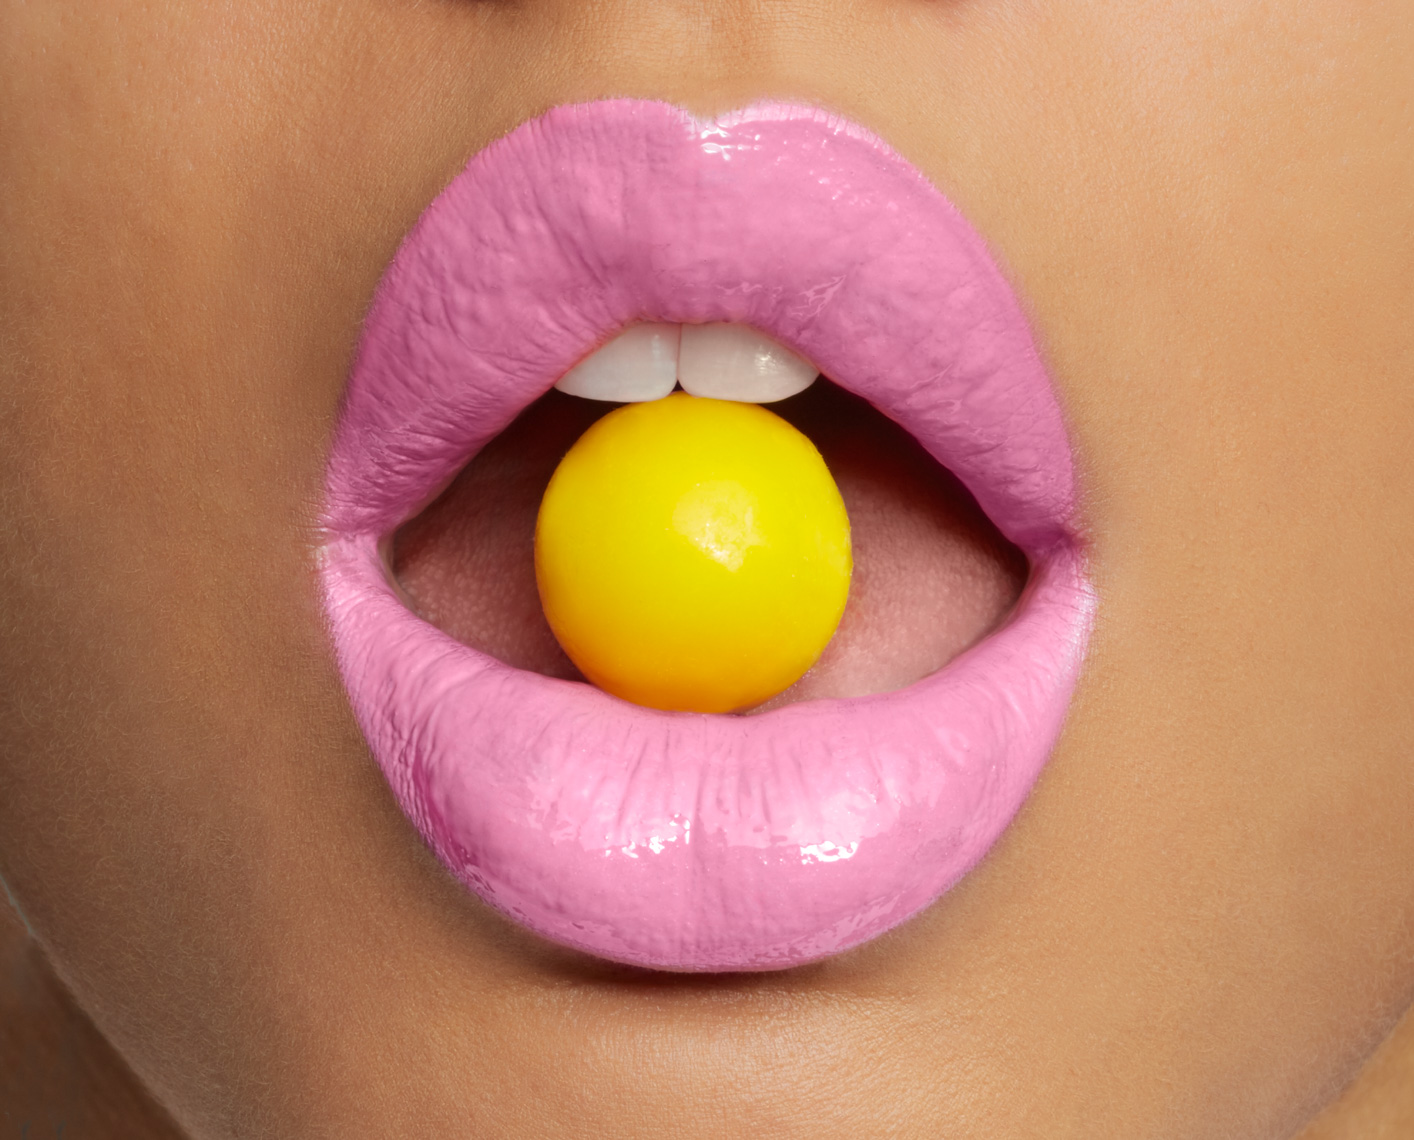 woman with pink lipstick and yellow candy between teeth